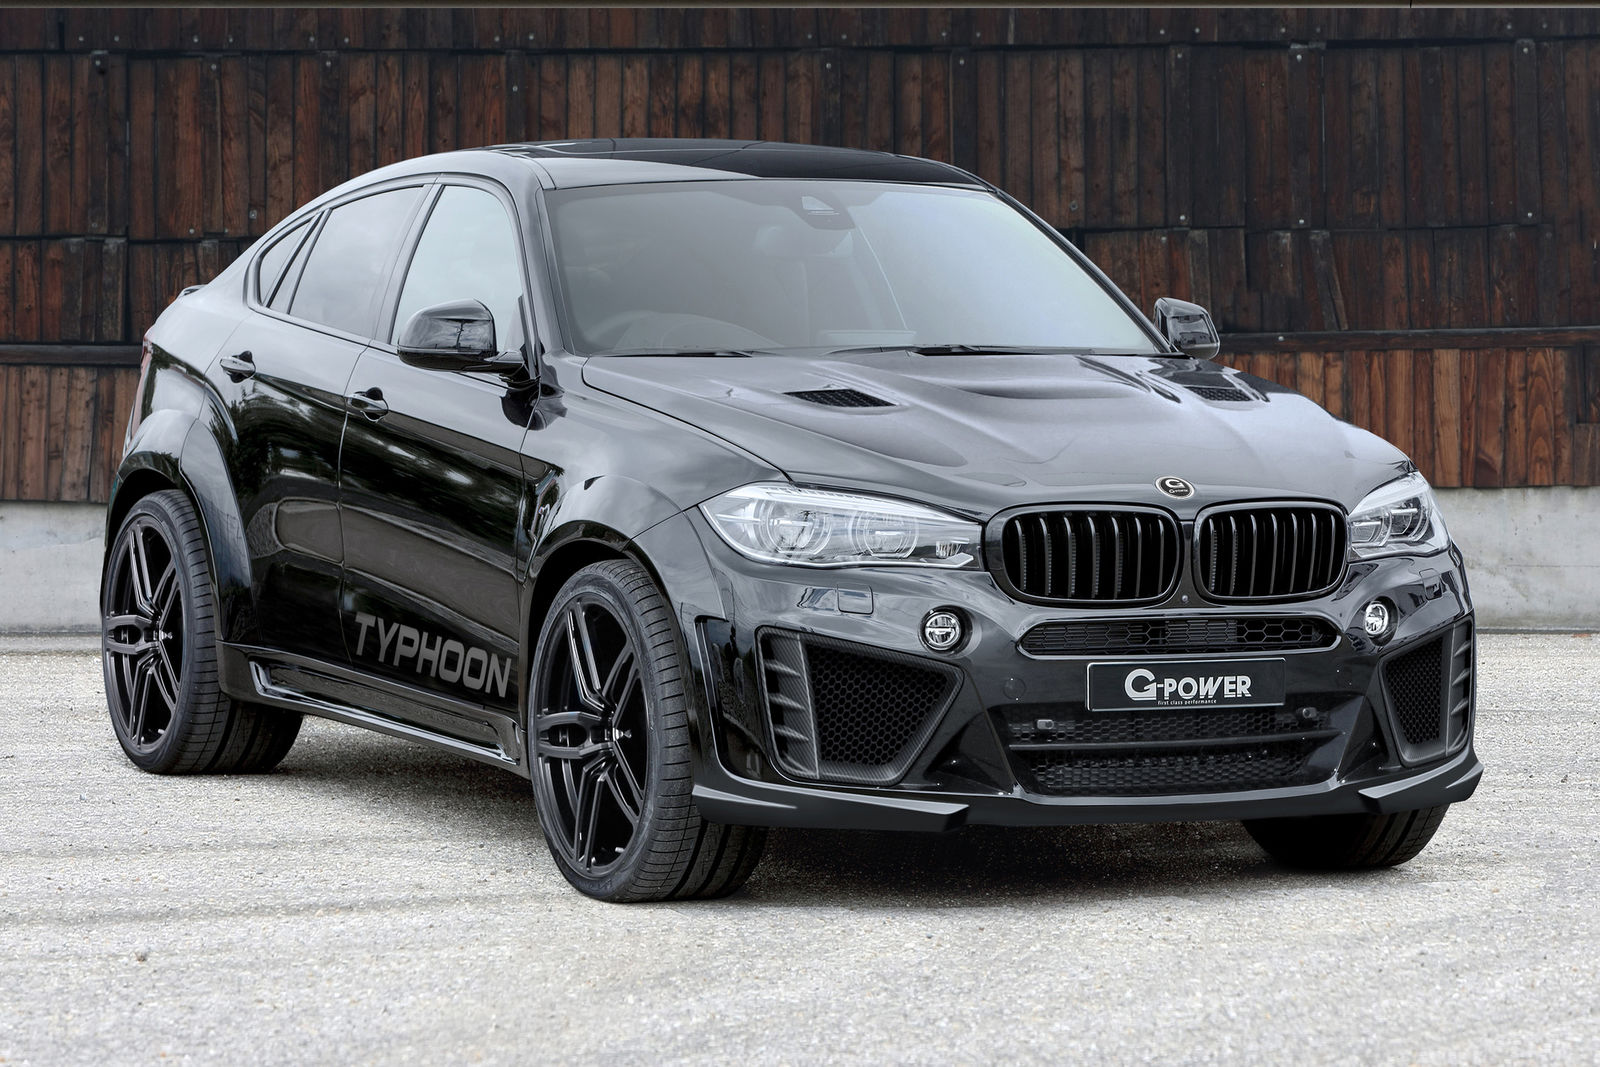 hight resolution of  g power bmw x6 m typhoon